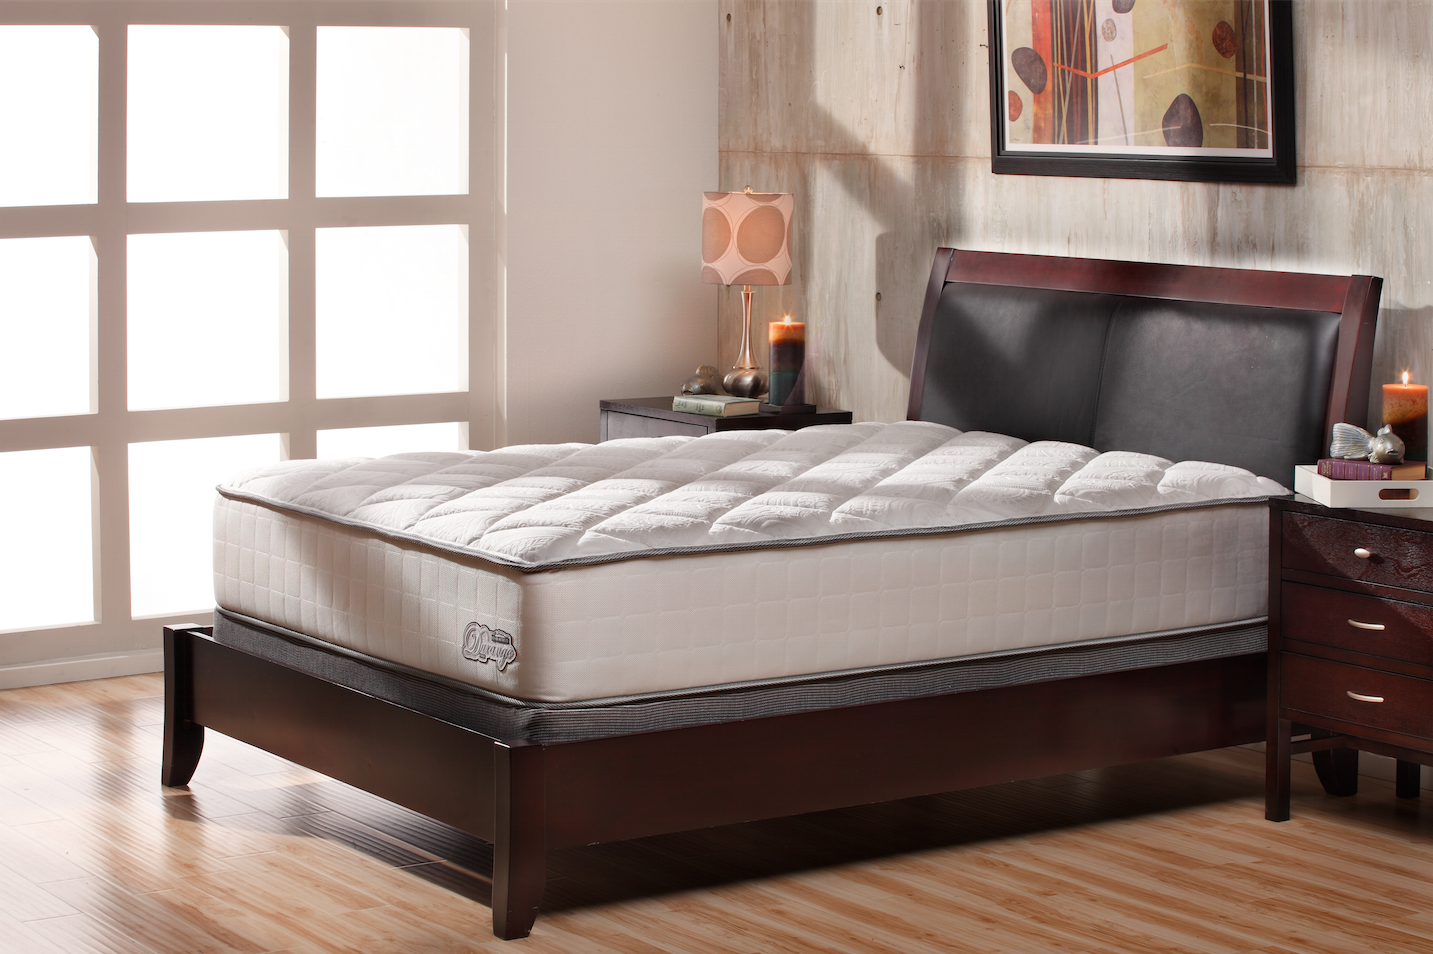 Denver Mattress Company image 5